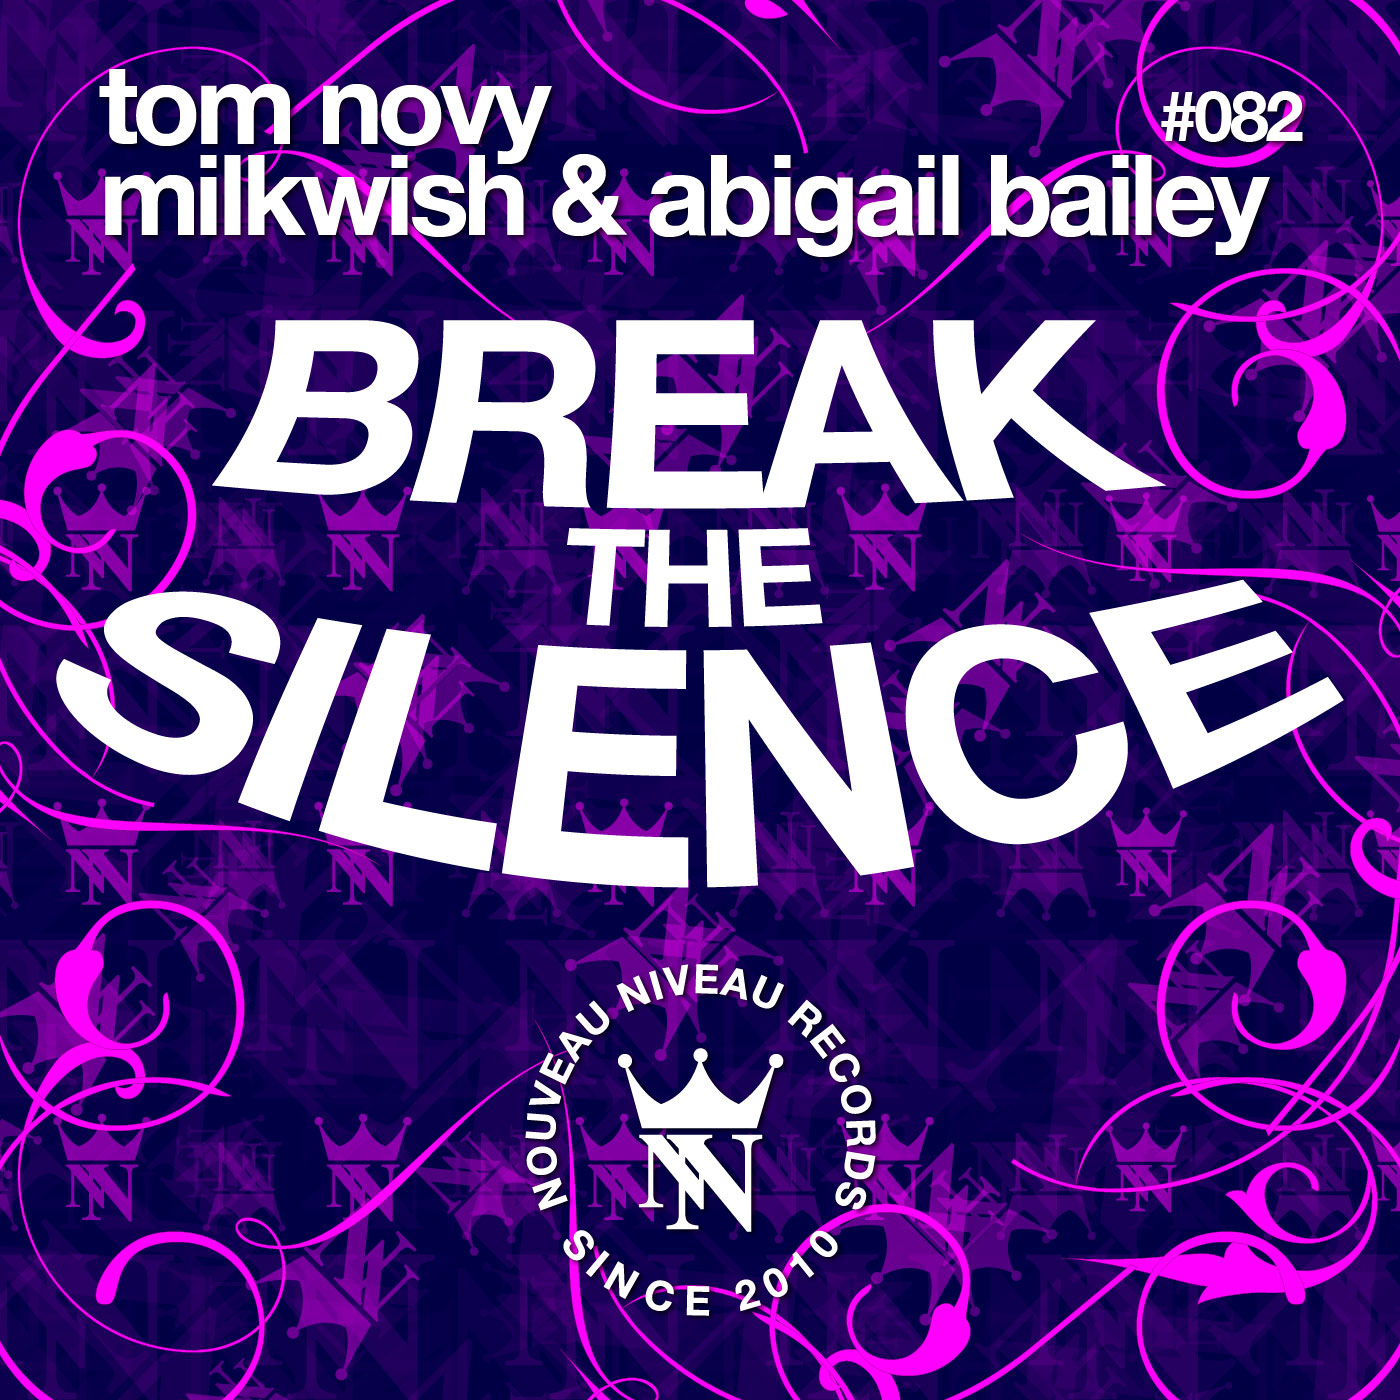 Tom Novy, Milkwish & Abigail Bailey - Break The Silence